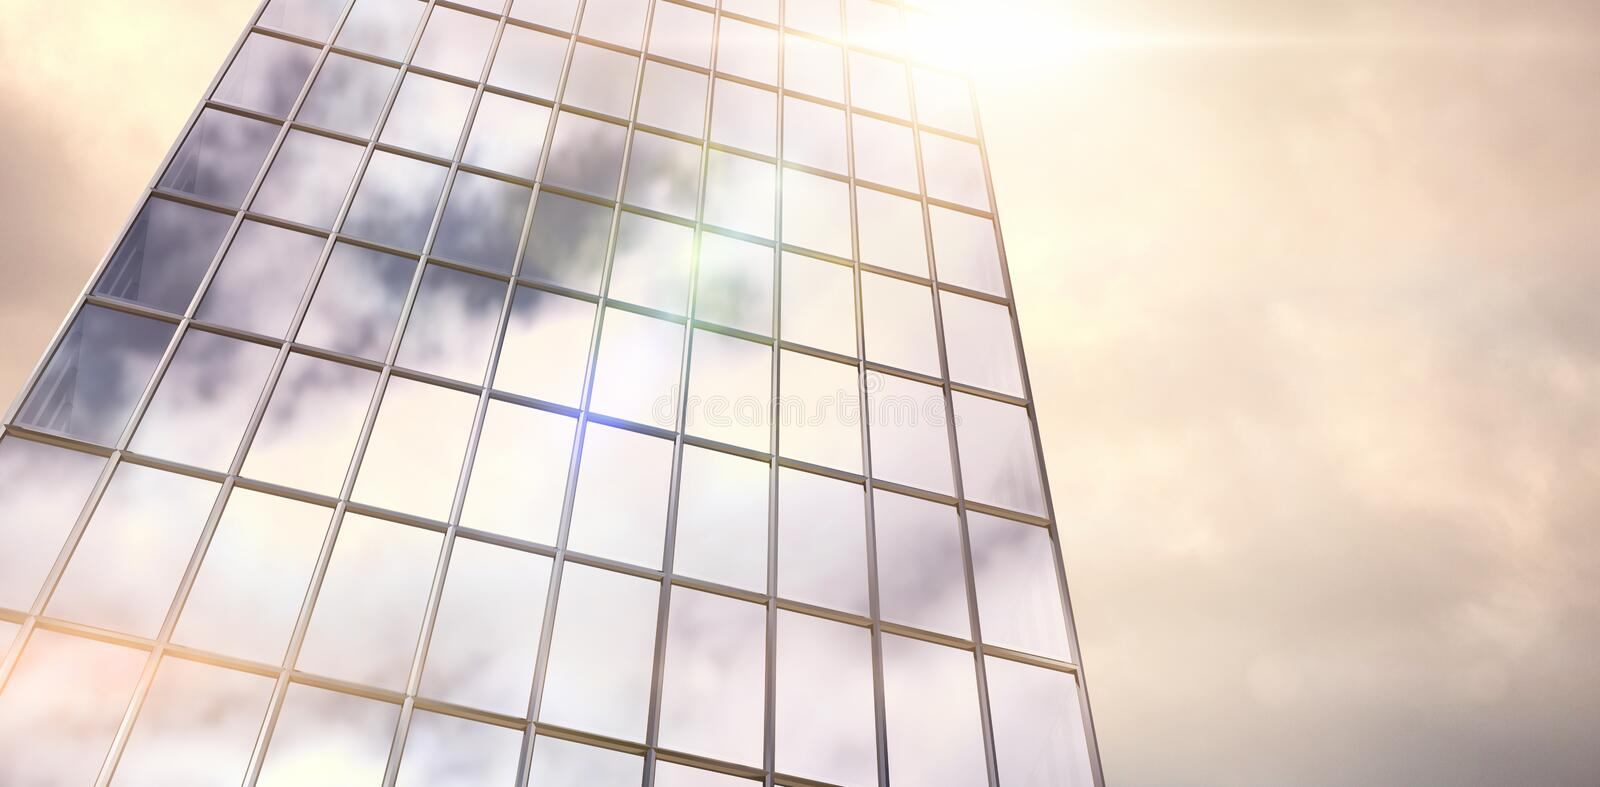 Composite image of reflection of sky on modern building stock illustration